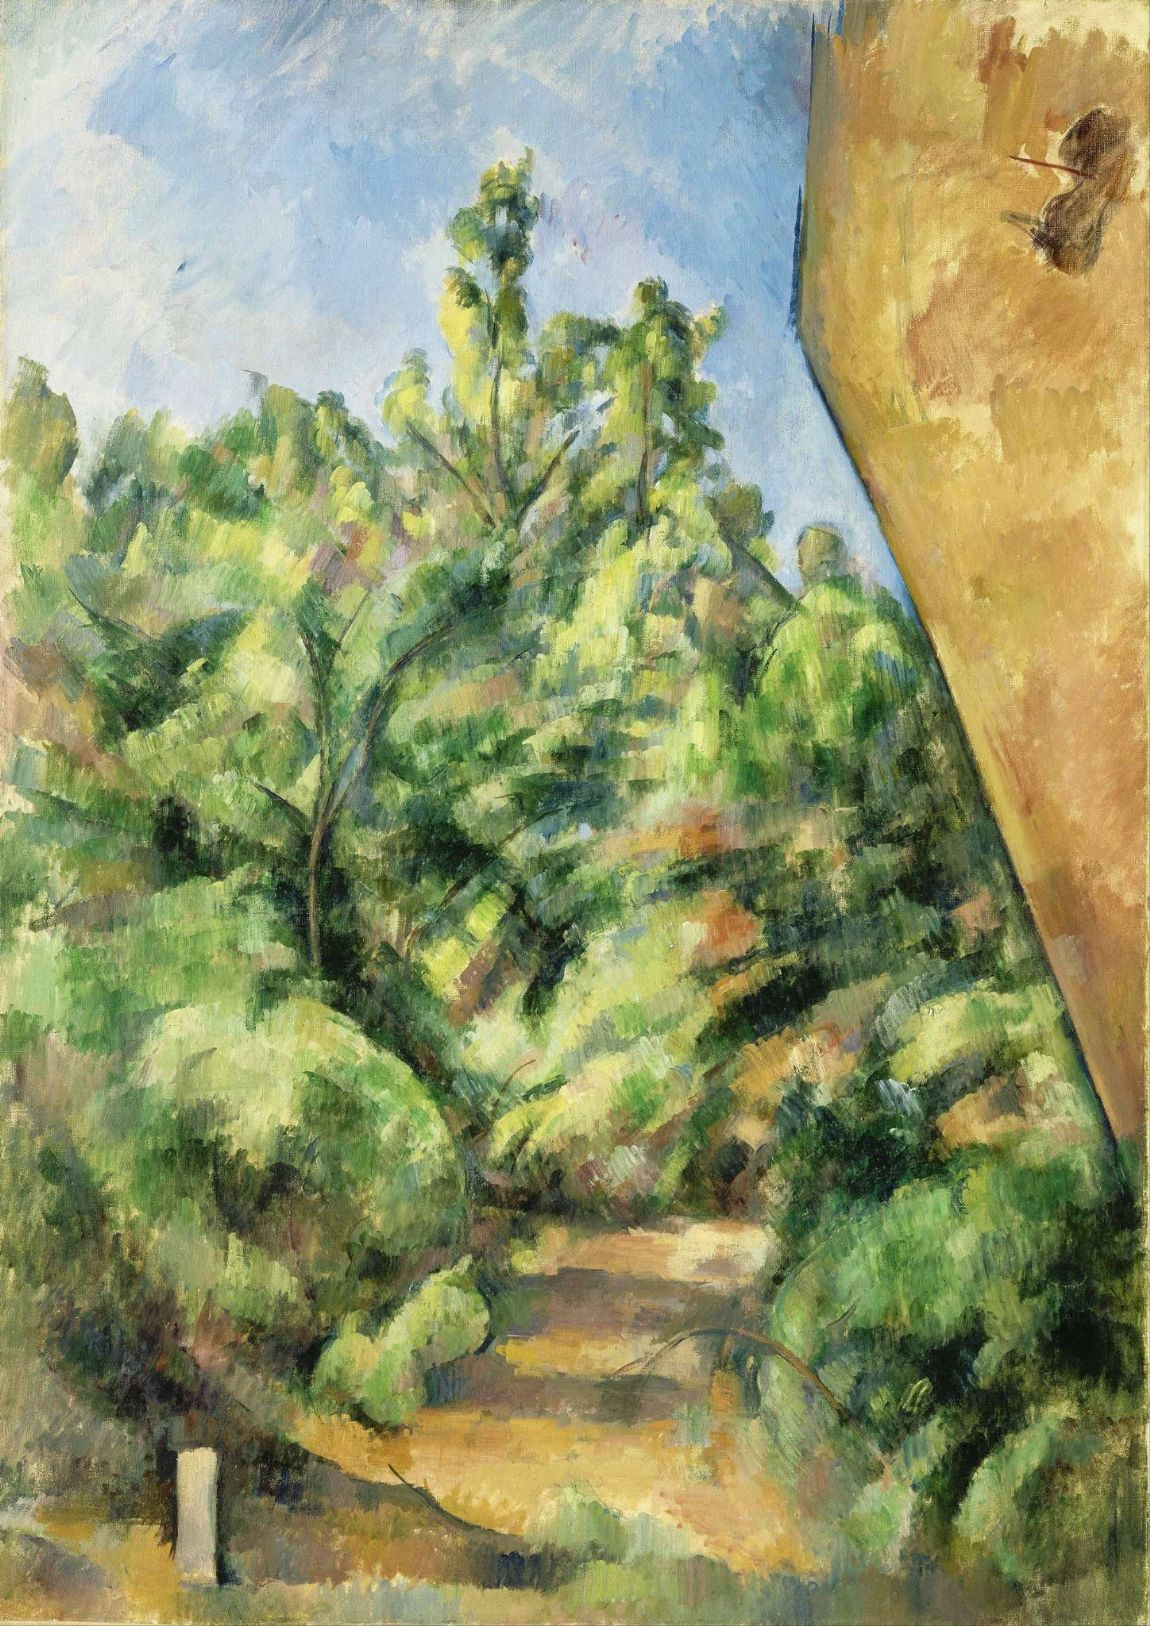 Cezanne, Paul: The Red Rock. Fine Art Print/Poster. Sizes: A4/A3/A2/A1 (004228)